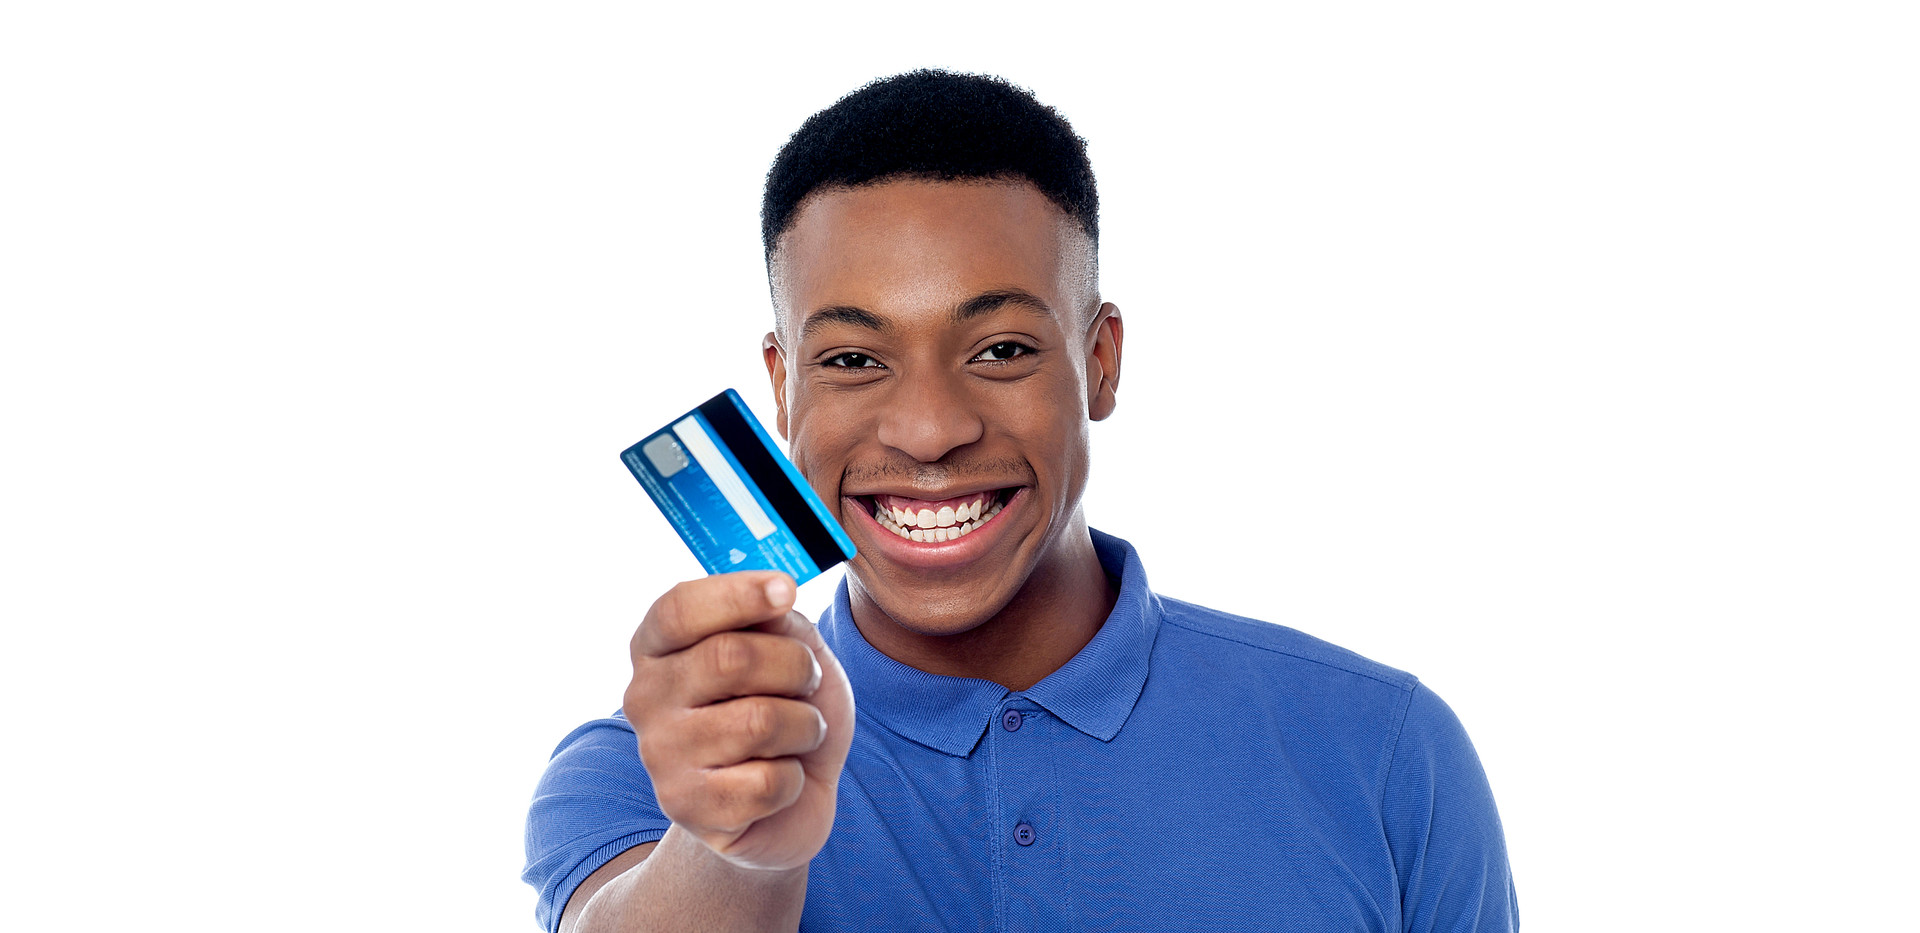 Smiling young boy showing credit card.jp